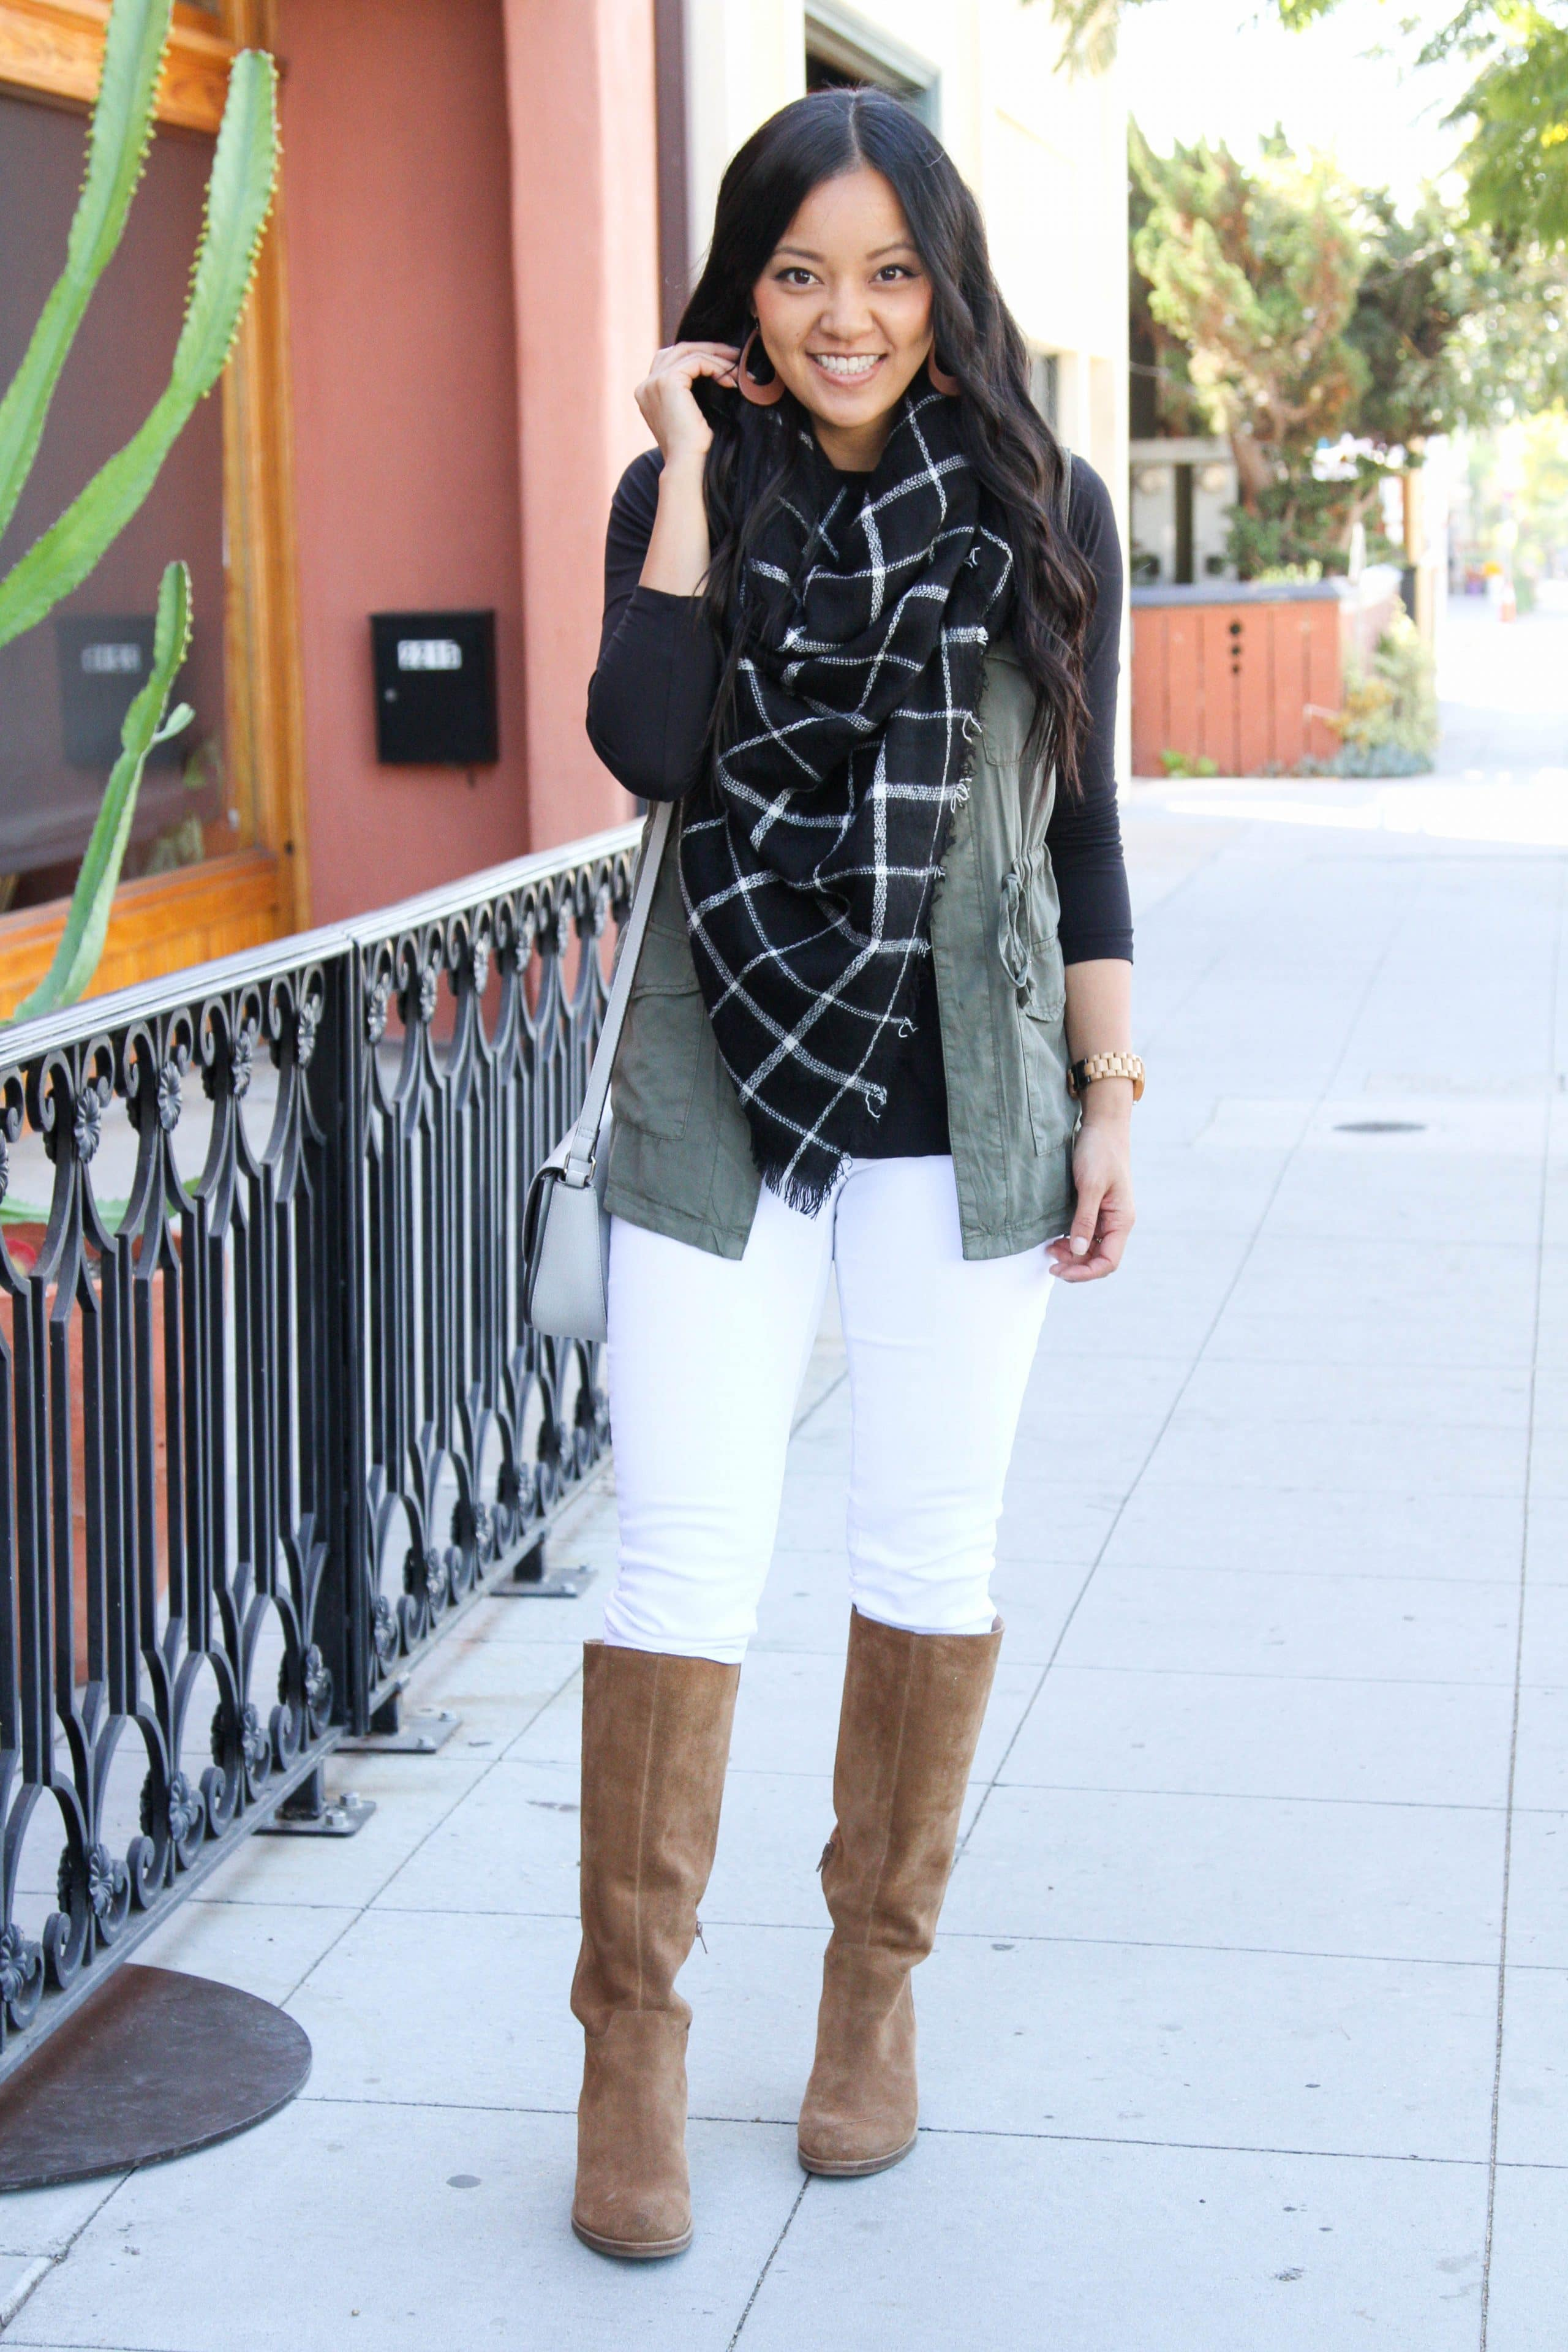 White jeans + vest + blanket scarf + boots